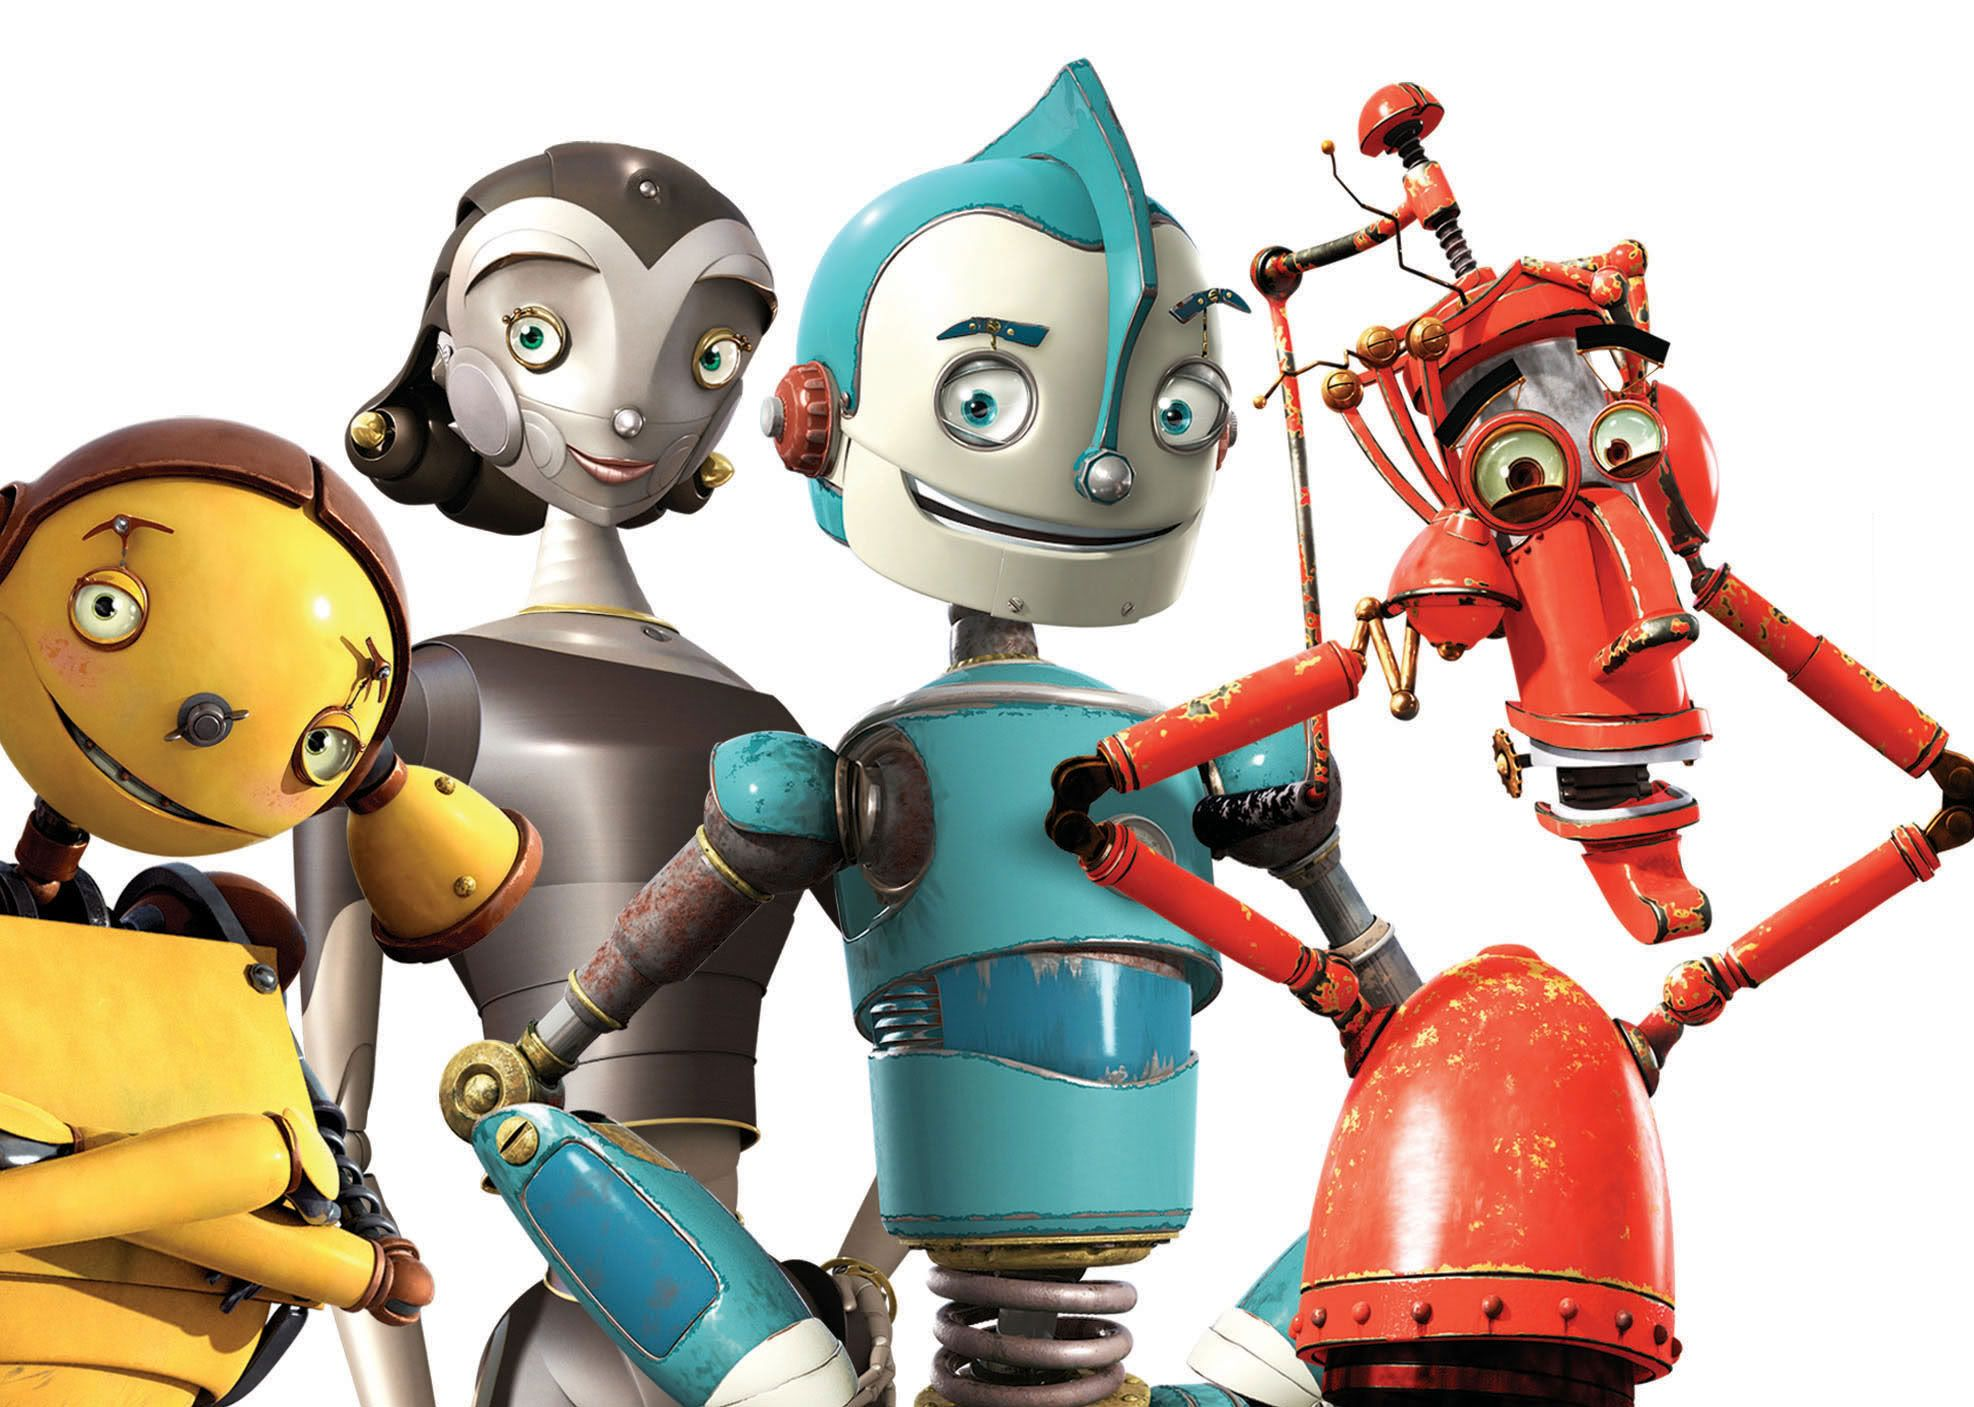 Cartoon Characters As Robots : Robots movie characters free download animated